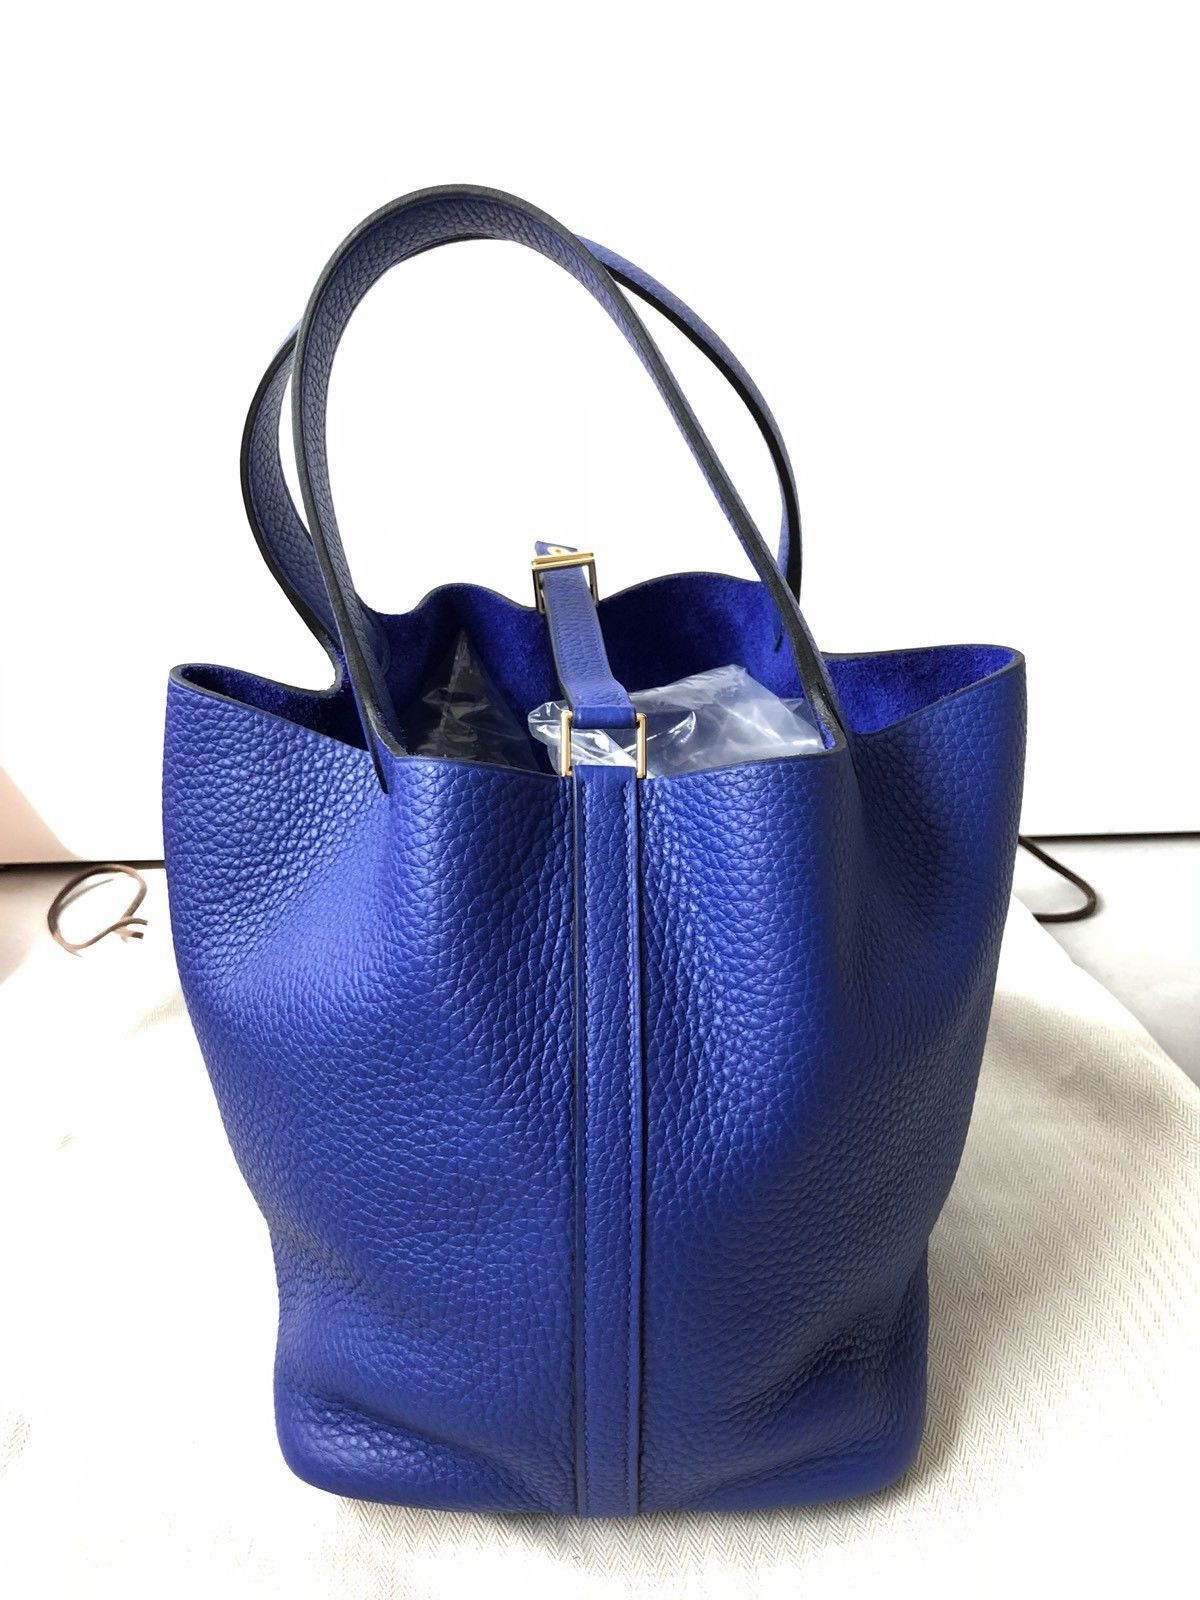 7a254b8ccd25 ... switzerland hermes picotin lock bag 22cm mm electric blue with gold  hardware handbag tote 92588 56e35